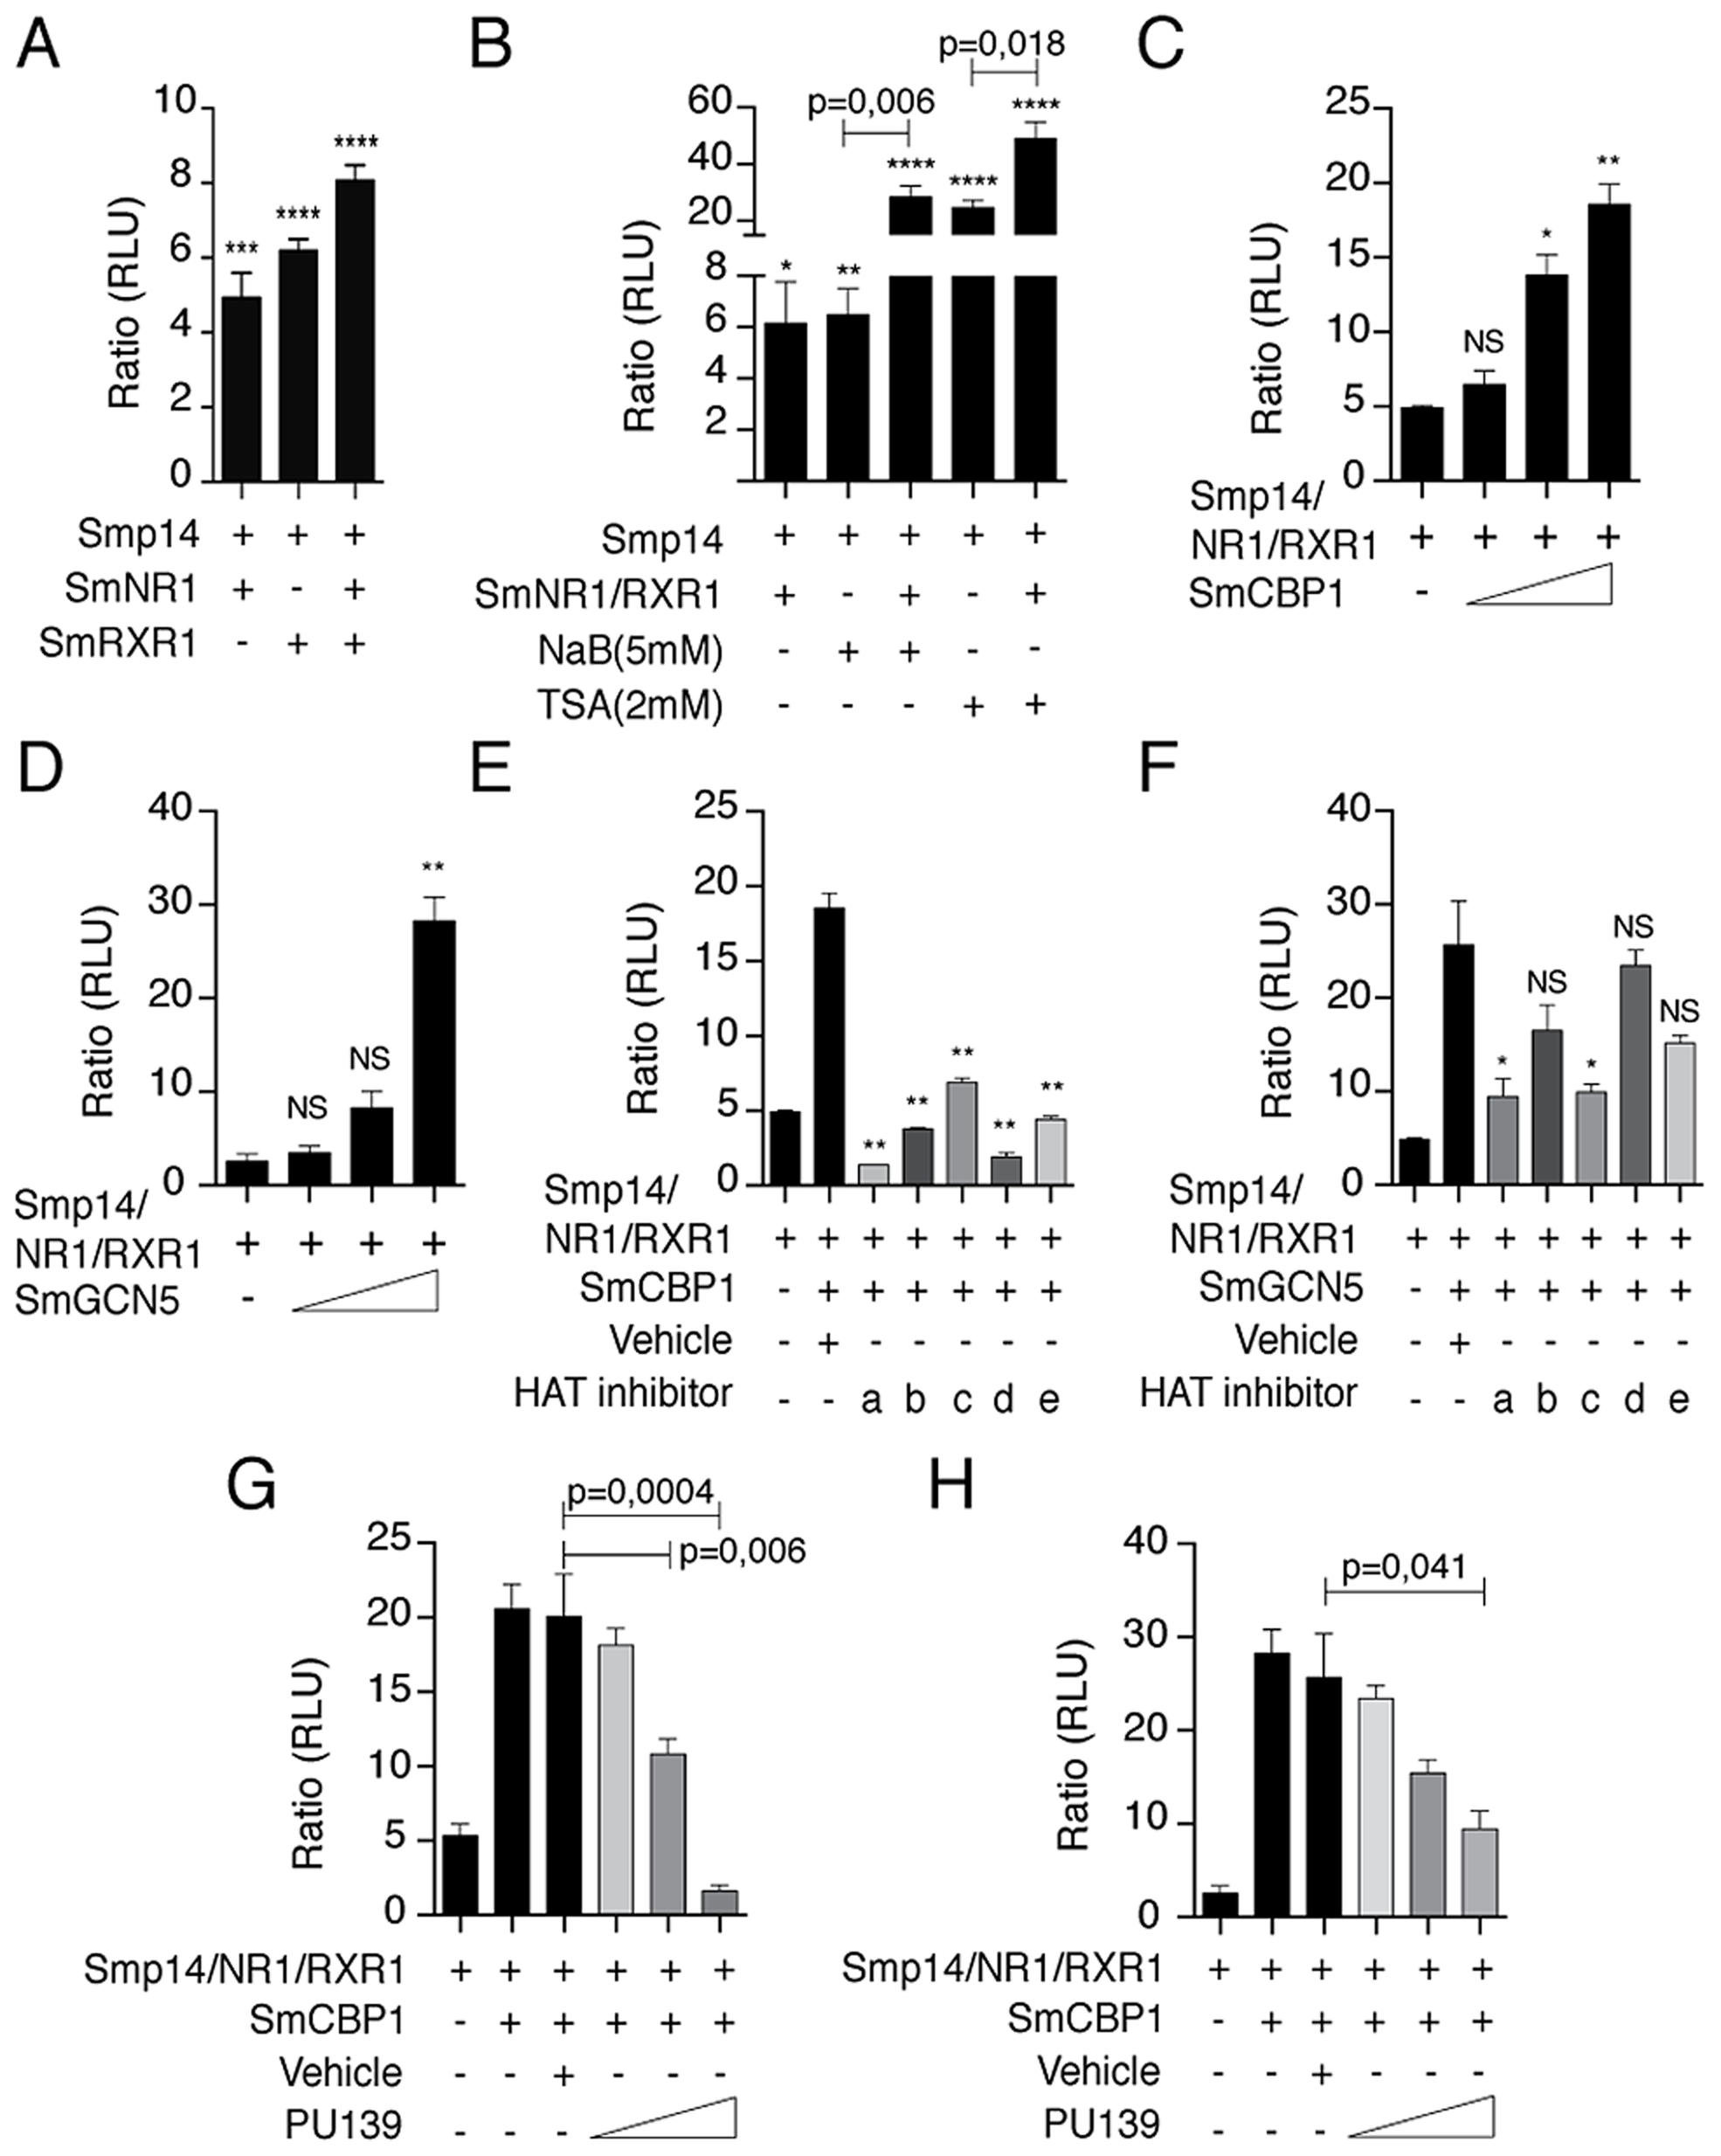 <i>Smp14</i> promoter-dependent activation by the SmRXR1/SmNR1 heterodimer and the HATs SmGCN5 and SmCBP1.